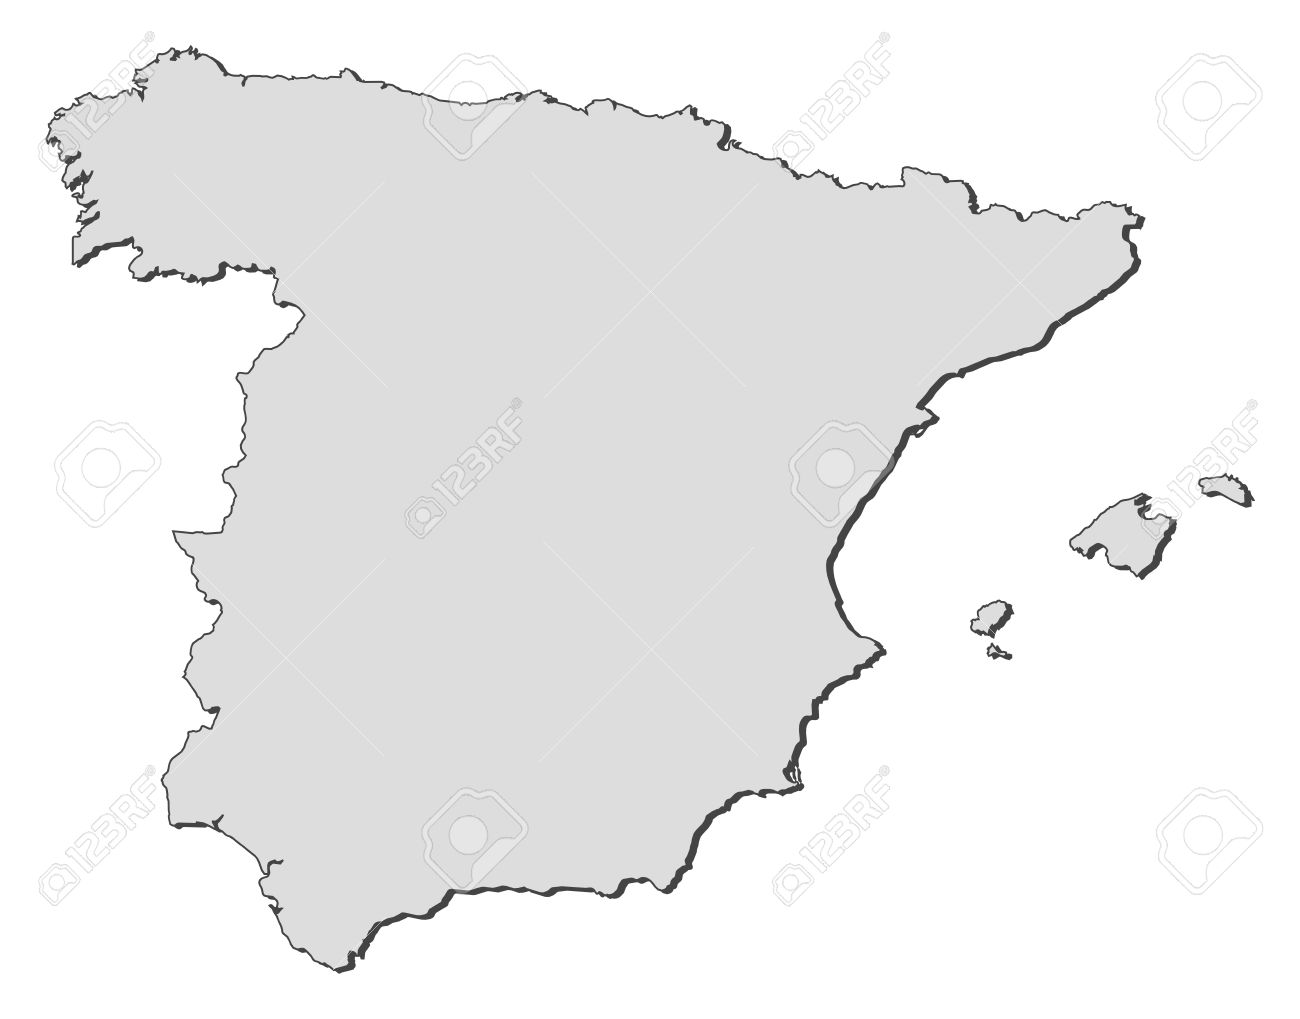 Spain Clipart Map